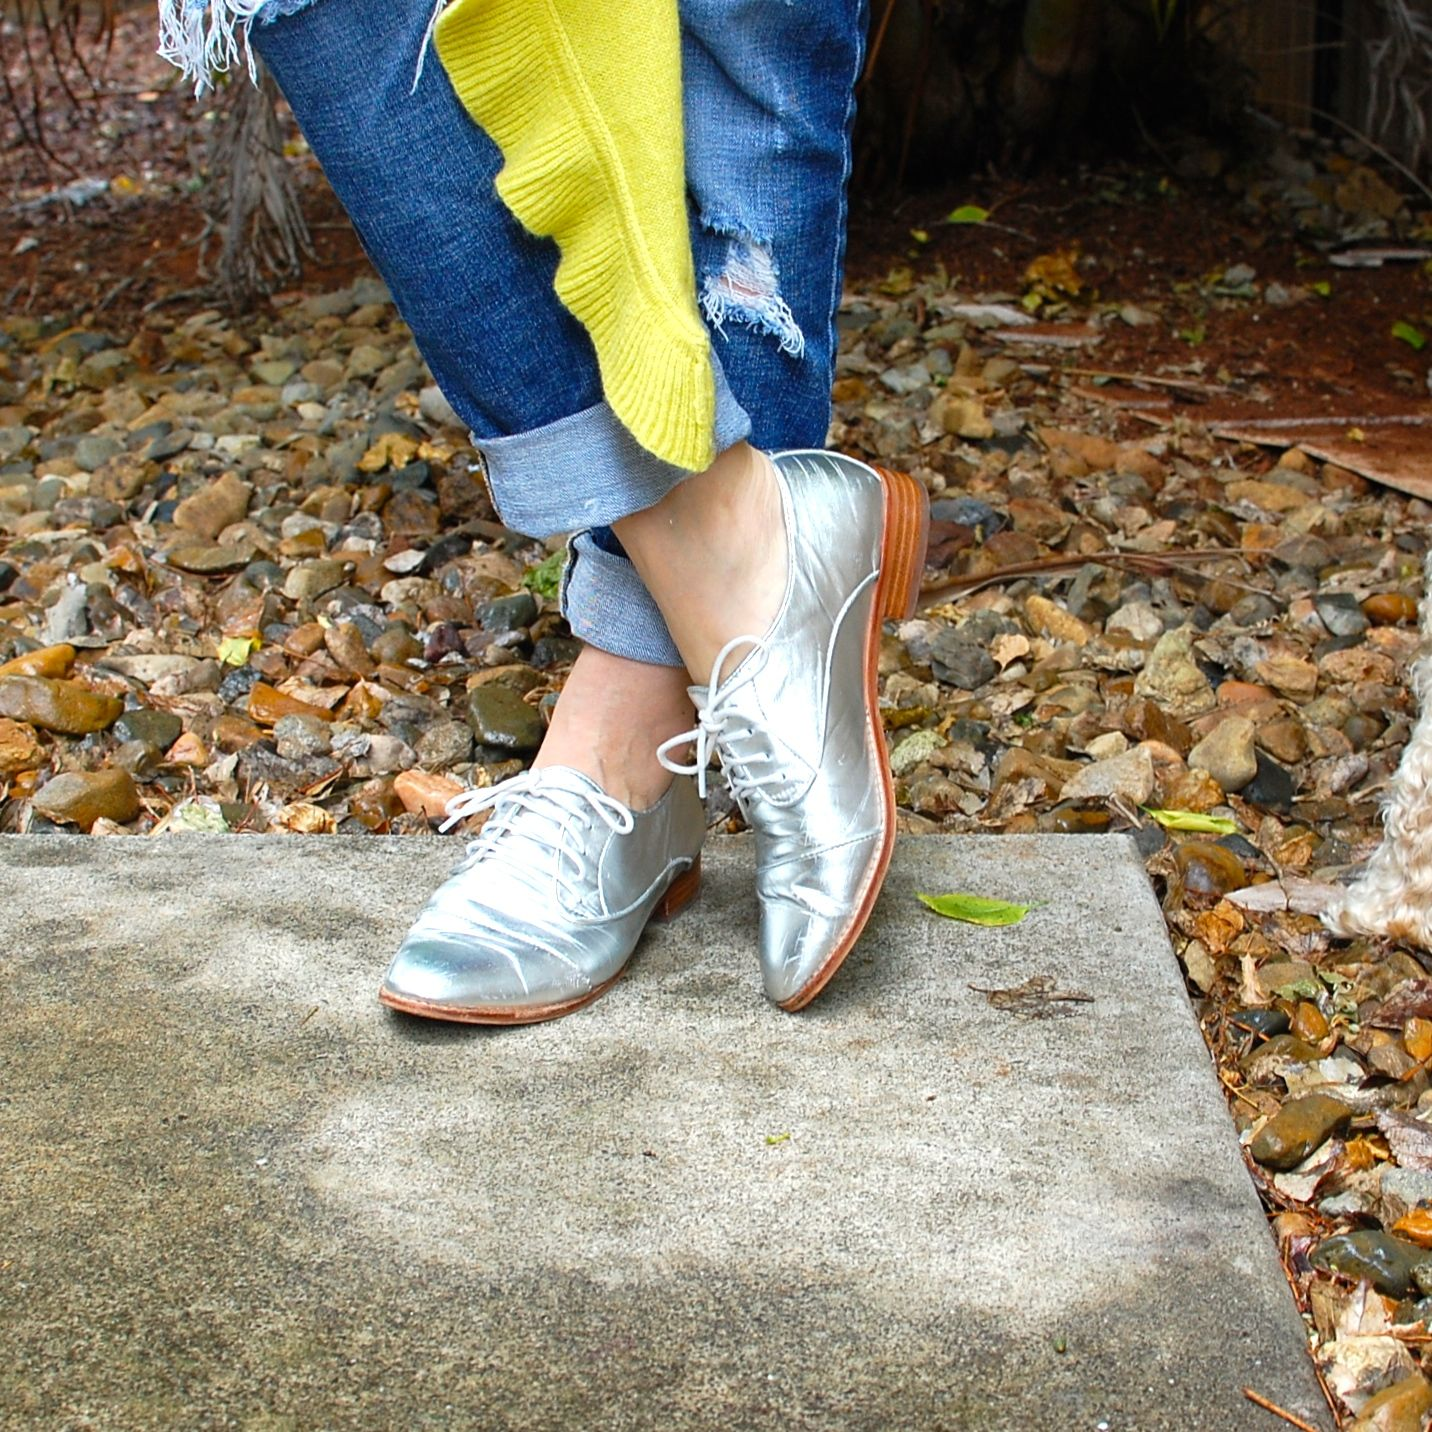 Silver Brogues go with everything!! Silver shoes, with folded up boyfriends